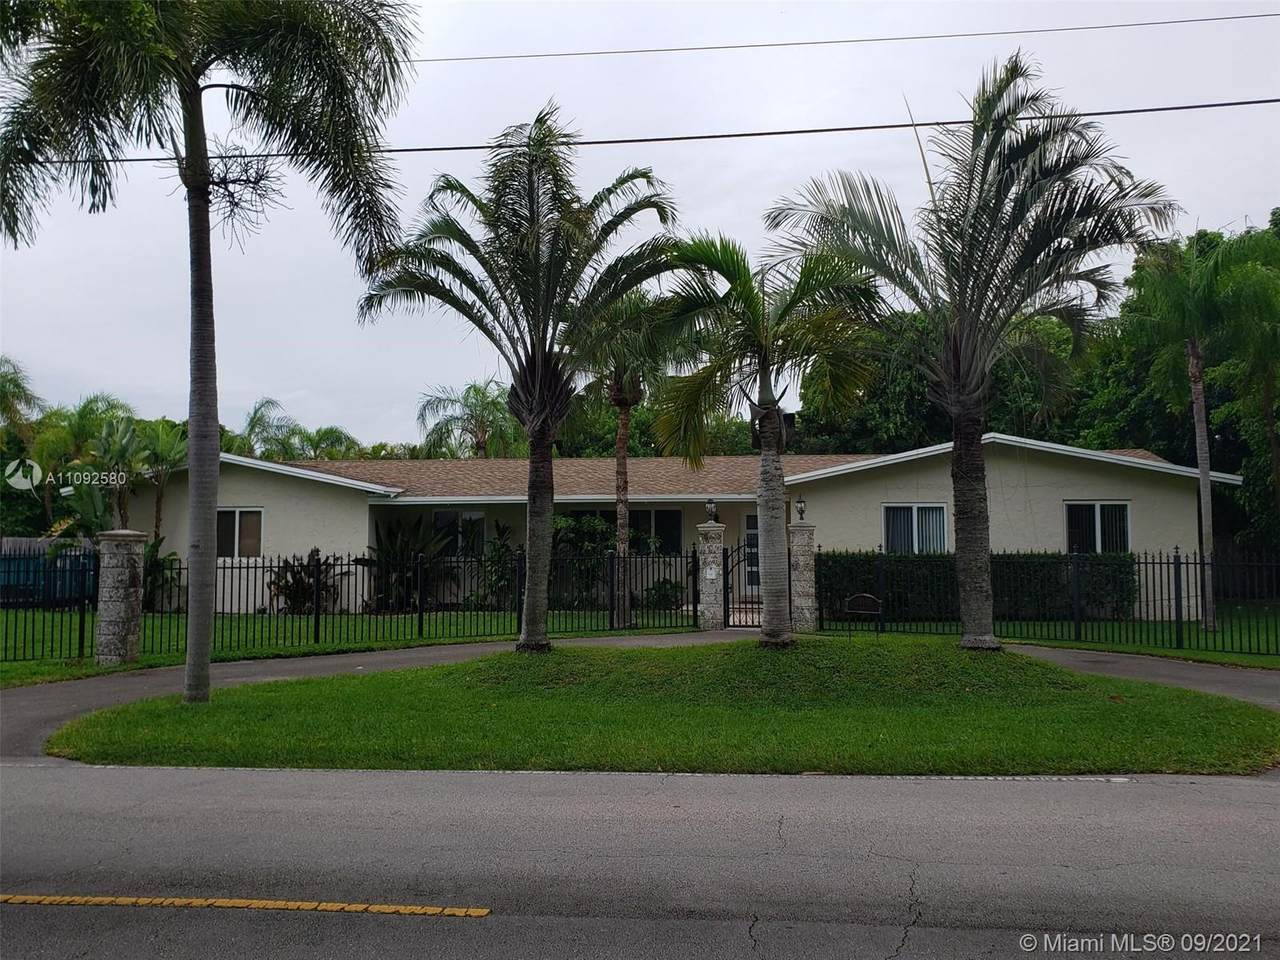 14190 97th Ave - Photo 1